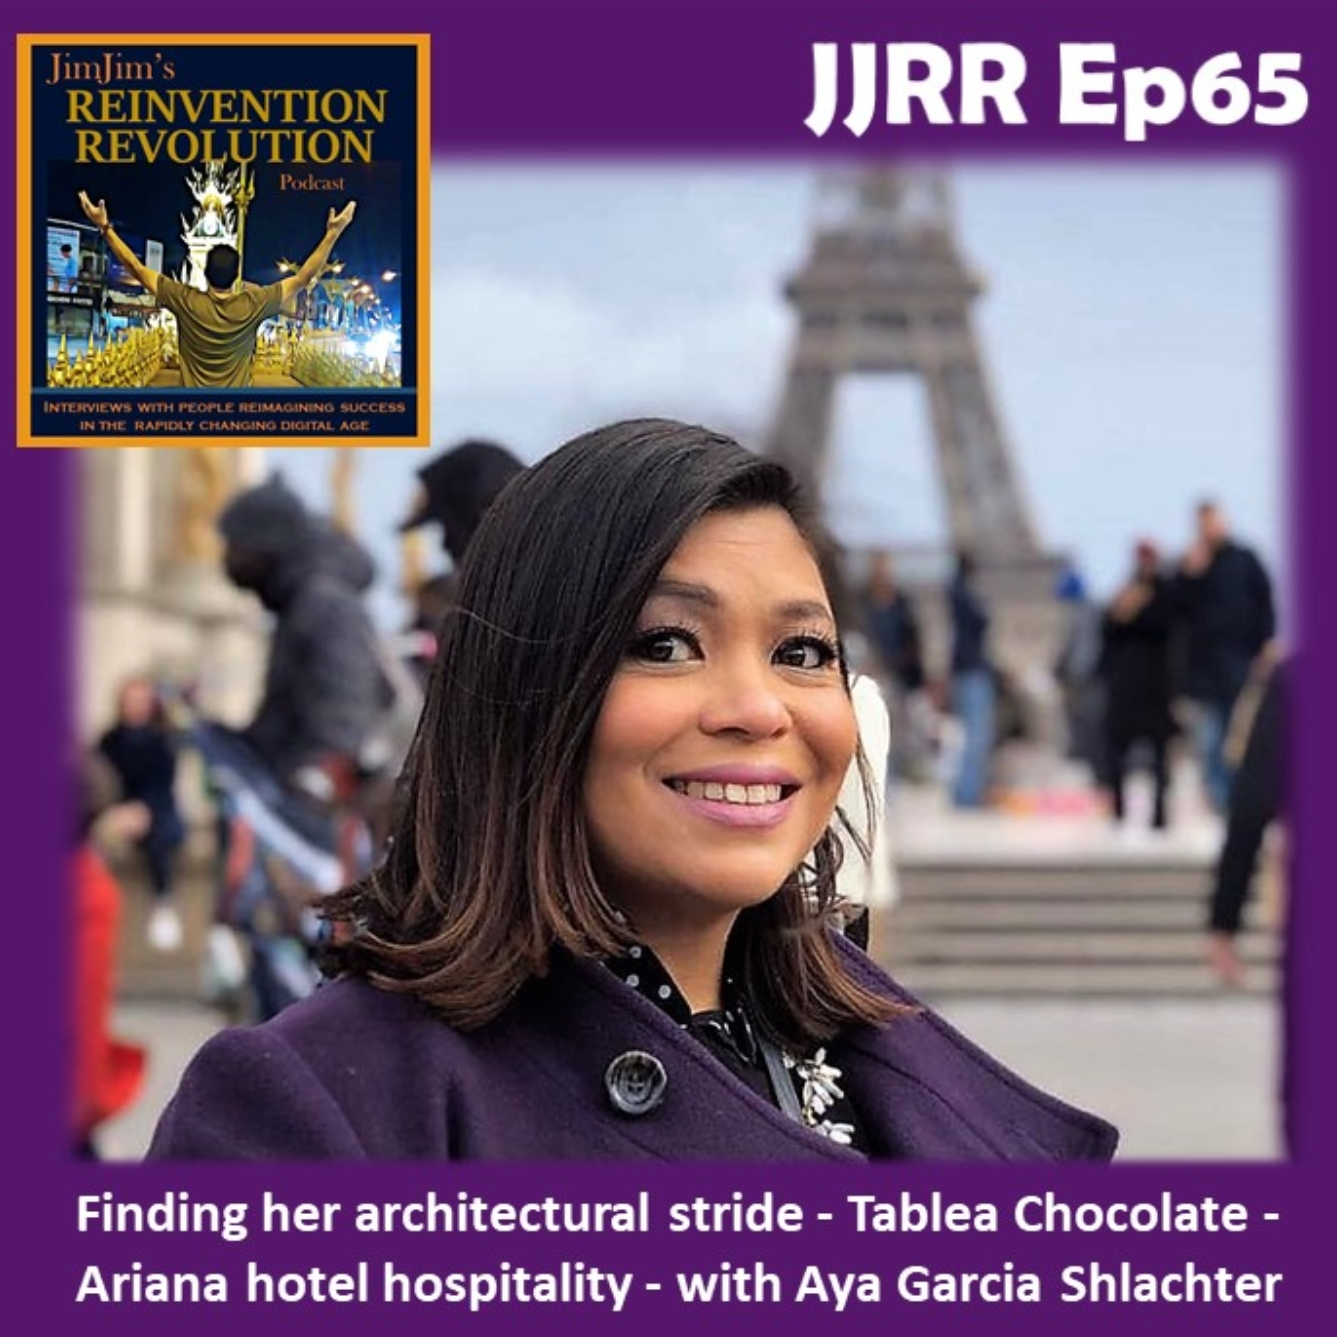 JJRR 65 Finding her architectural stride – Tablea Chocolate – Ariana hotel hospitality – with Aya Garcia Shlachter